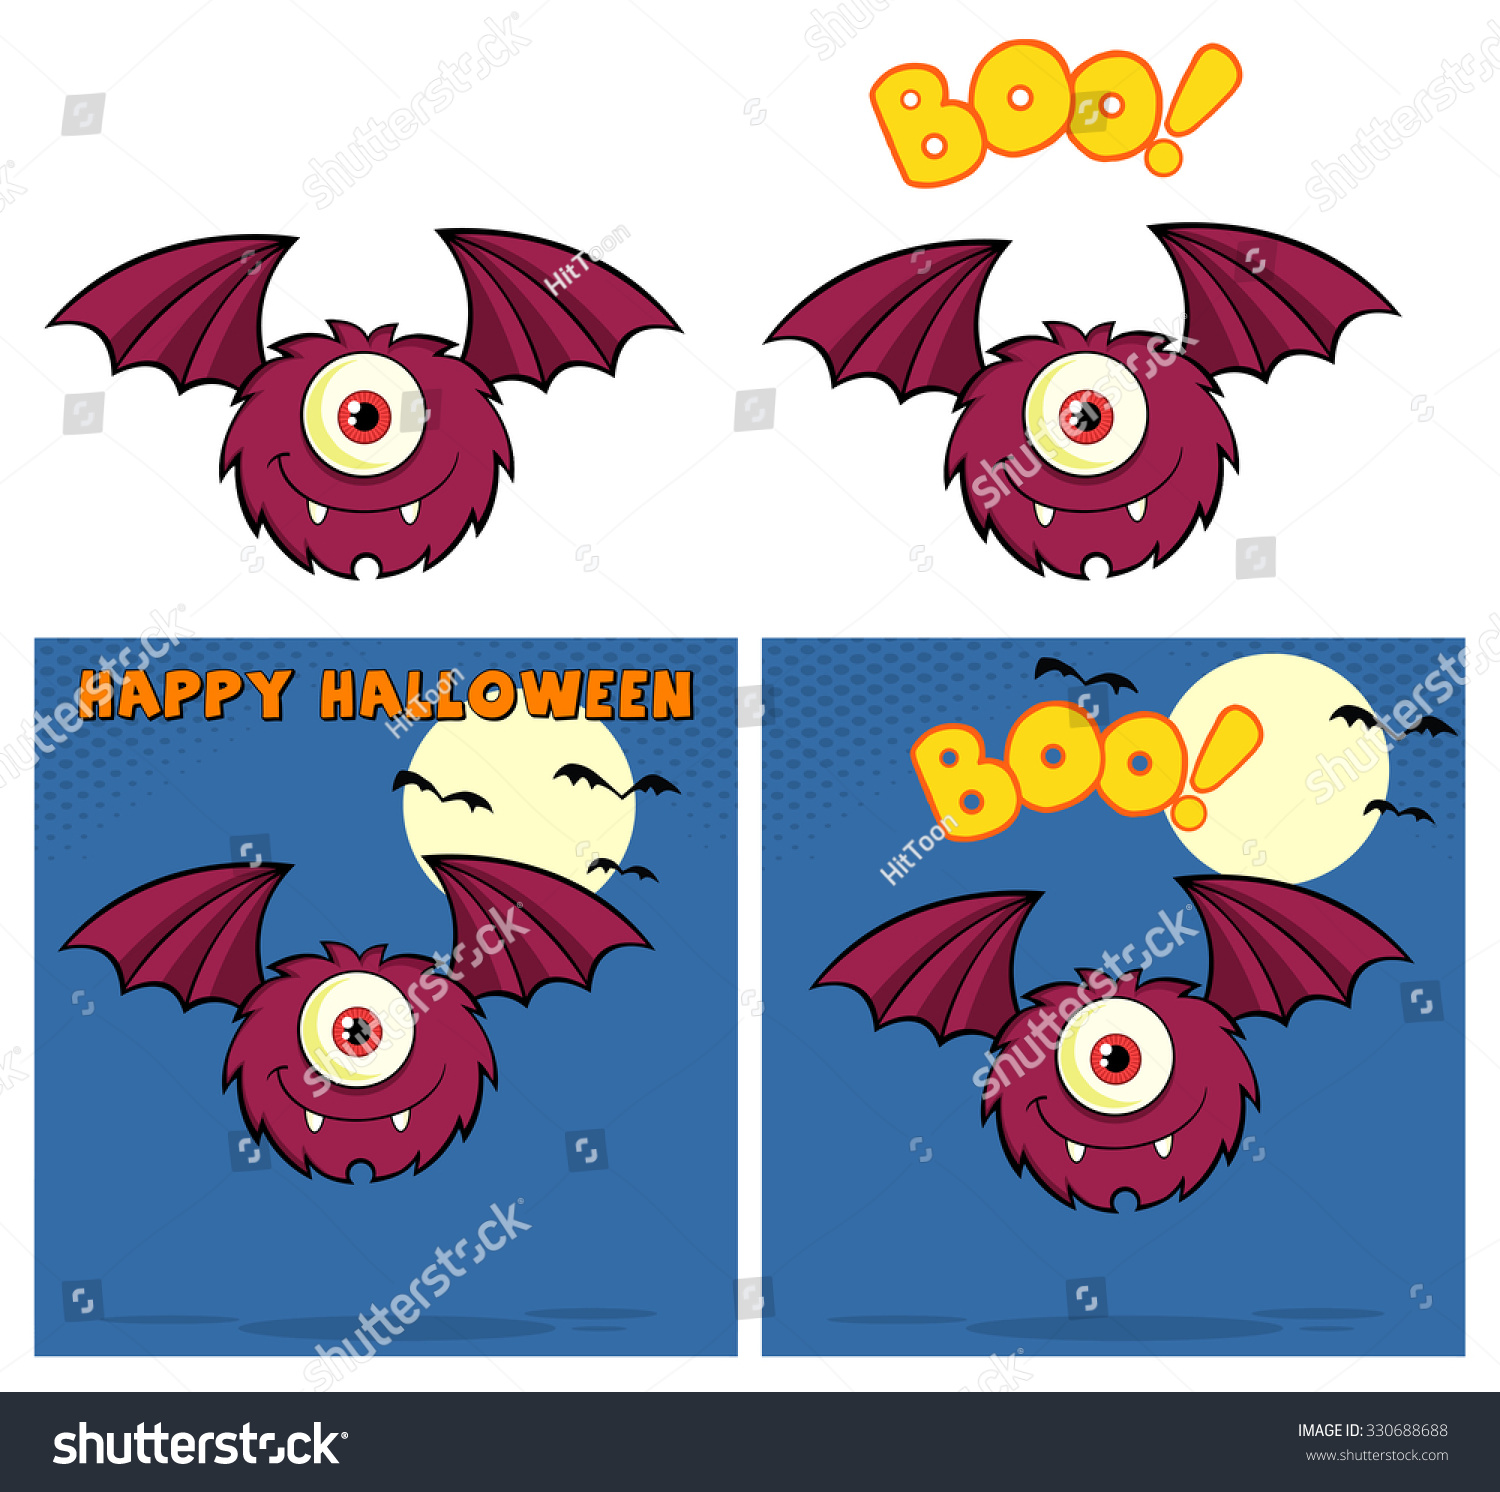 1 Eyed Cartoon Characters : Furry one eyed monster cartoon character stock vector